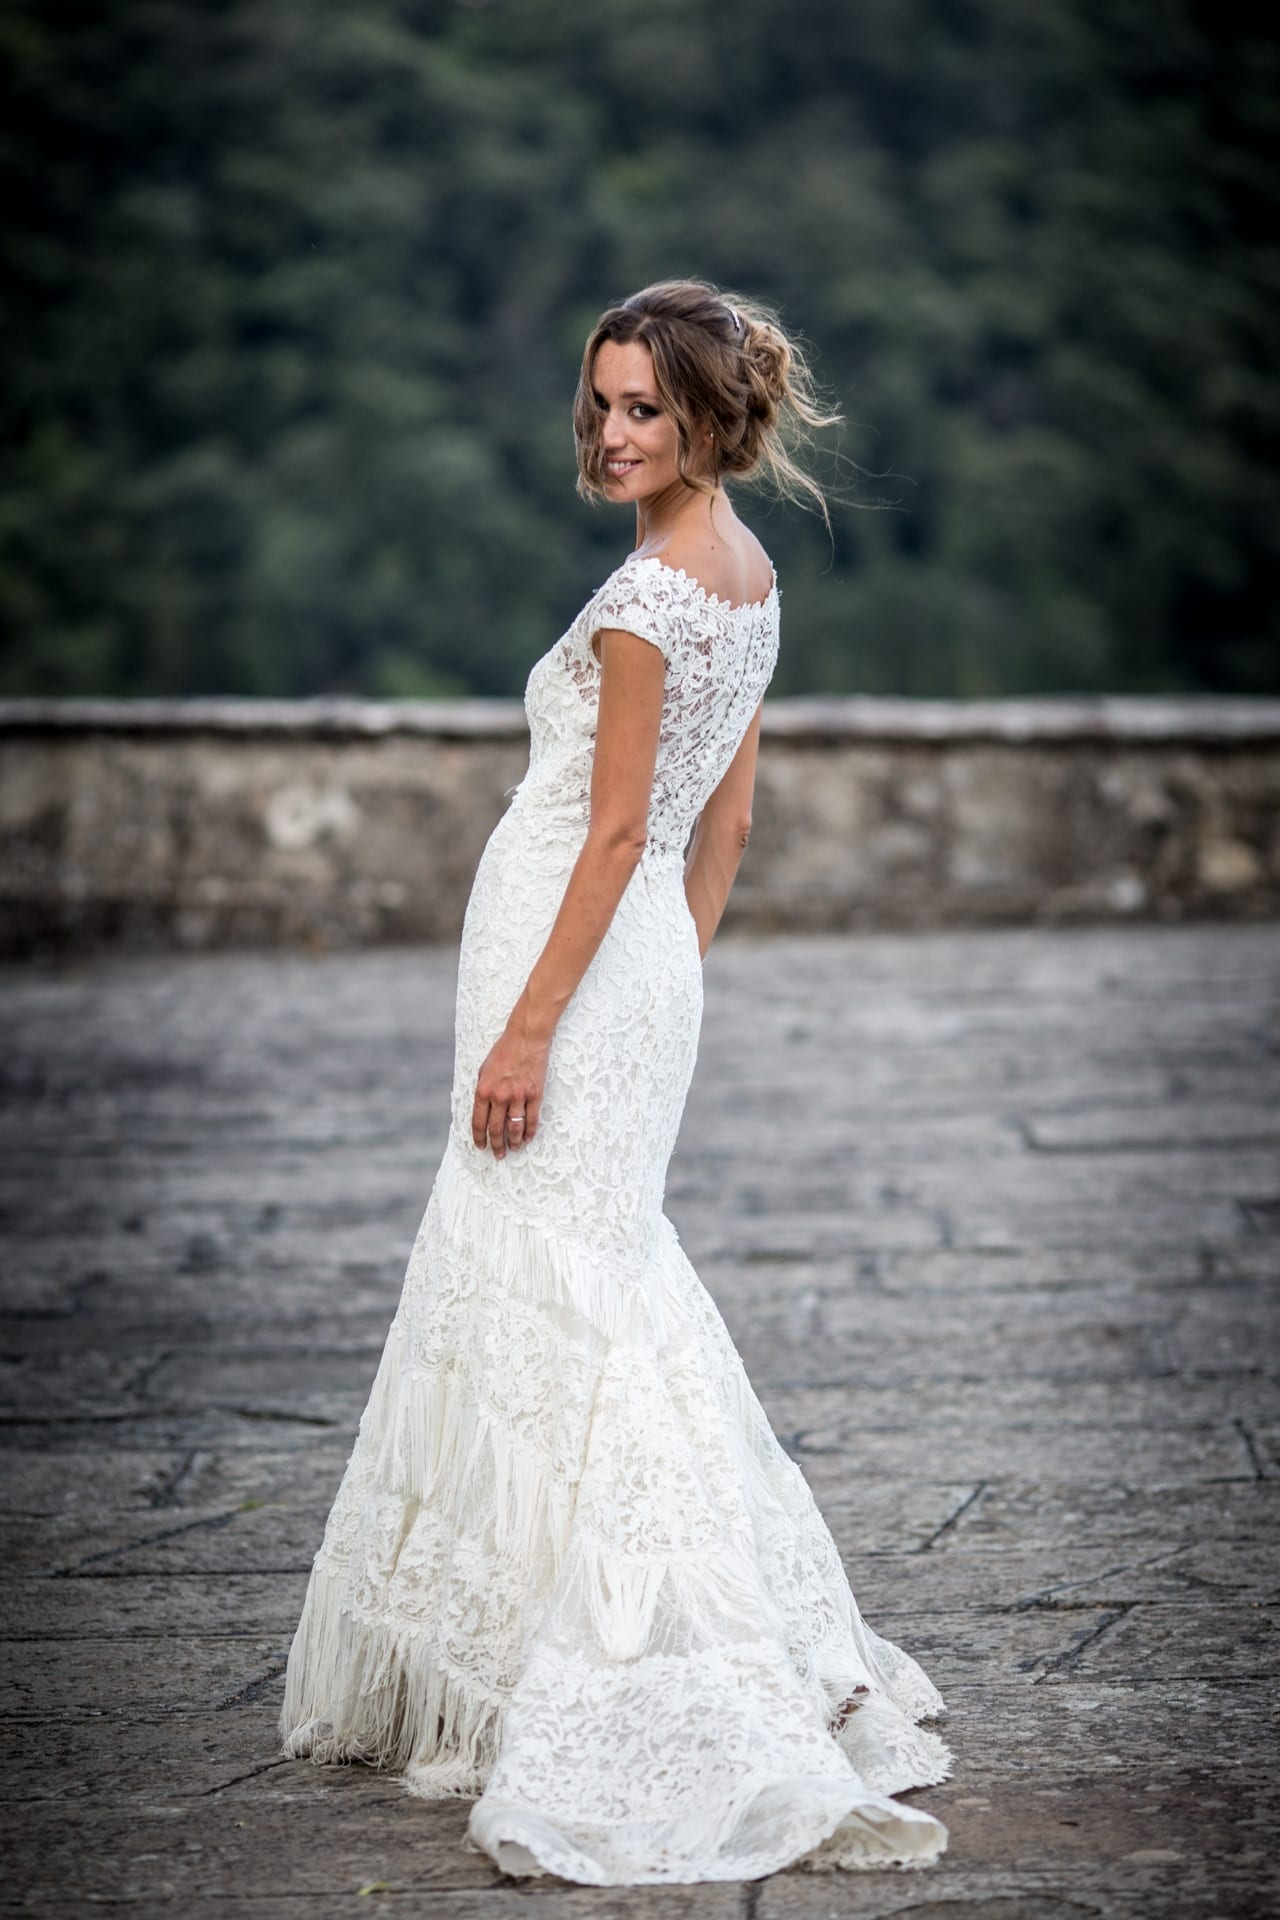 https://righiphotography-com.s3.eu-central-1.amazonaws.com/wp-content/uploads/2020/02/02183218/Wedding-Photo-Perfect-Mix-Studio-Fotografico-Righi-RIGHI-120.jpg